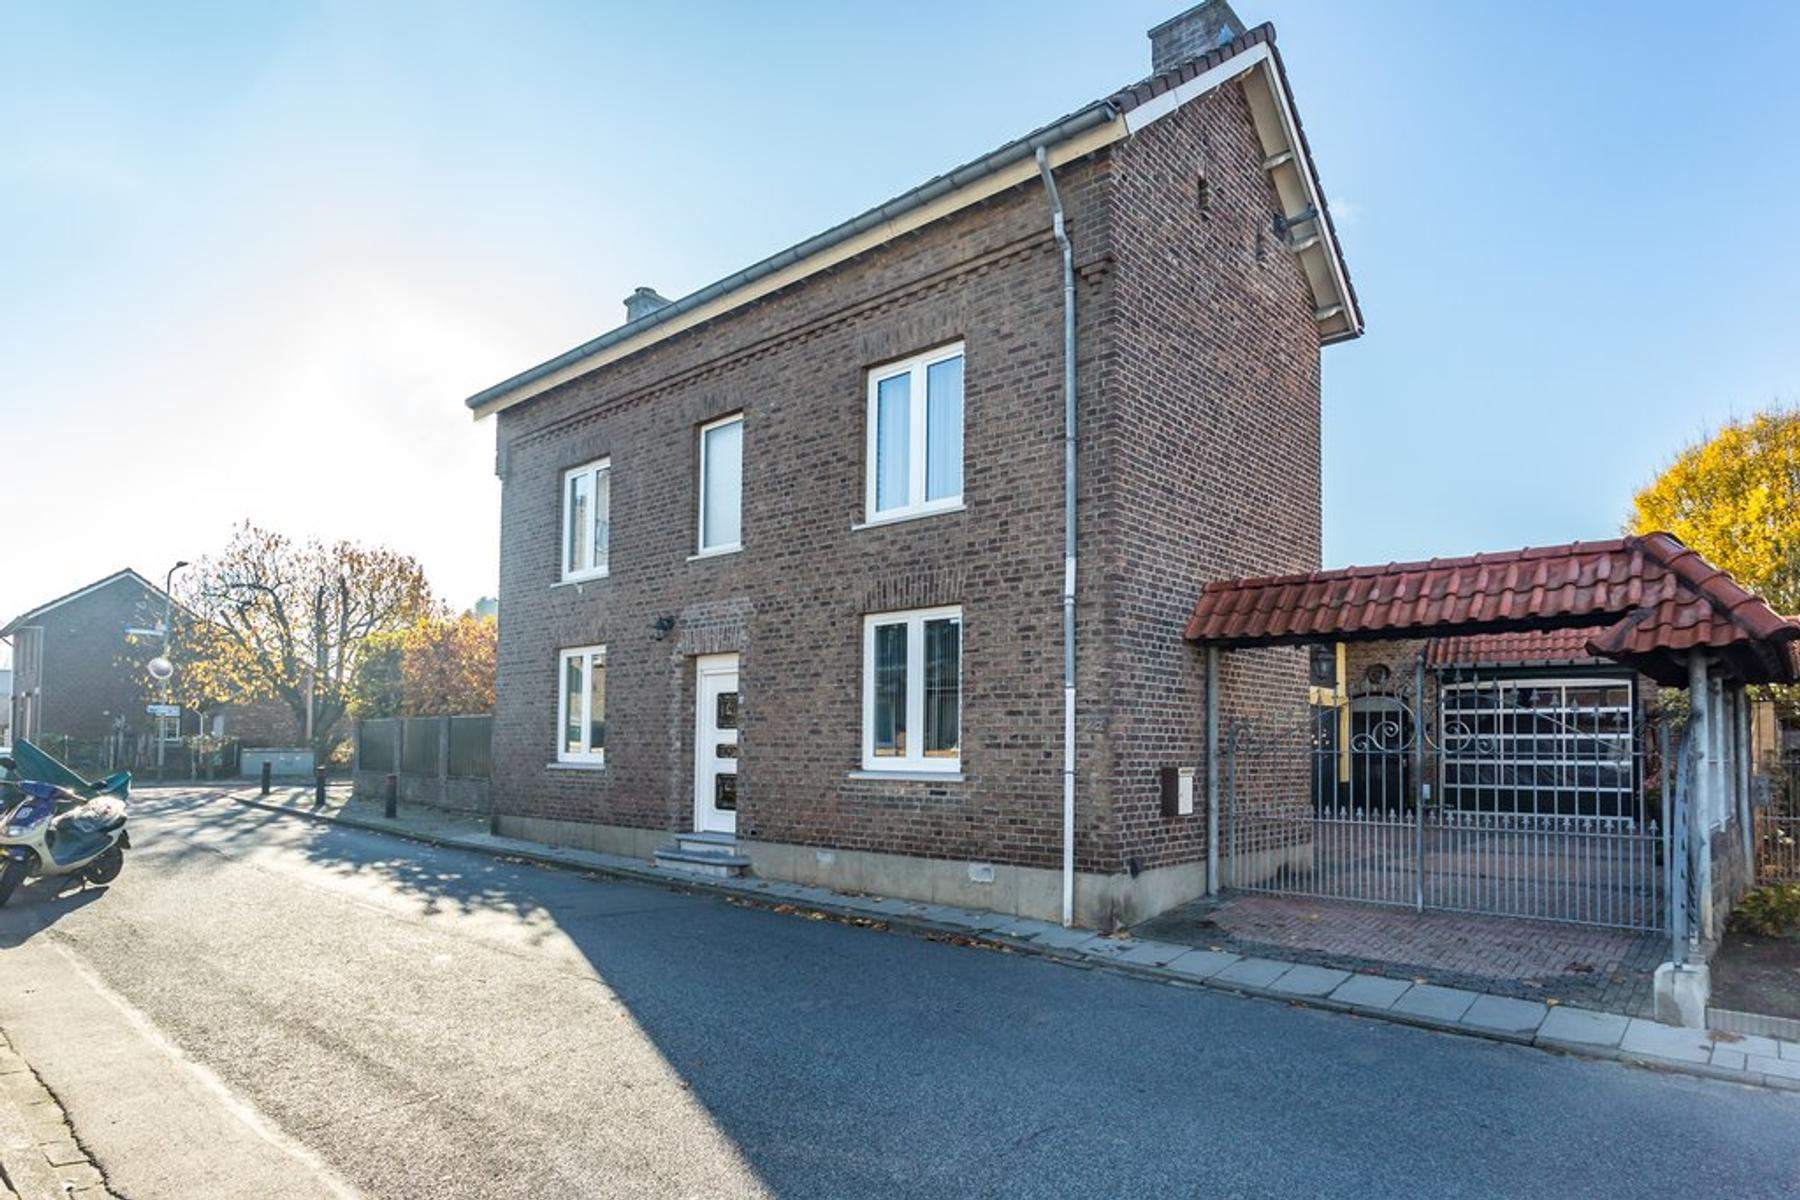 Lindendriesstraat 27 in Elsloo 6181 NB